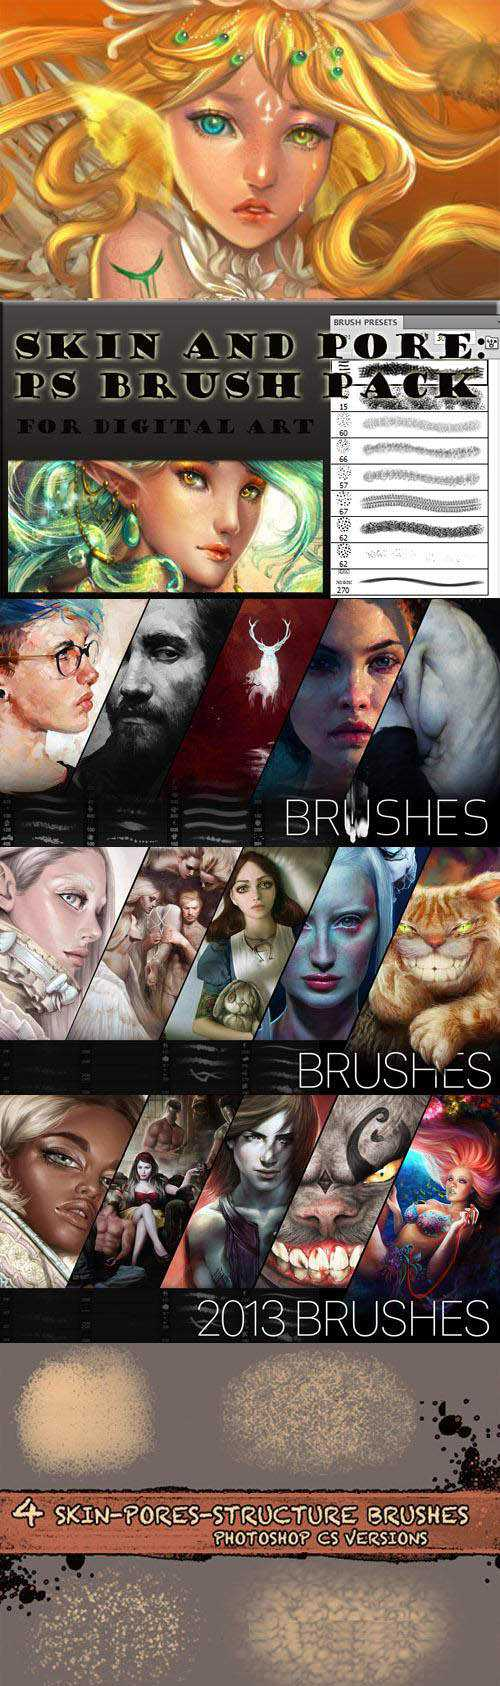 Skin Texture & Pore Brushes for Photoshop